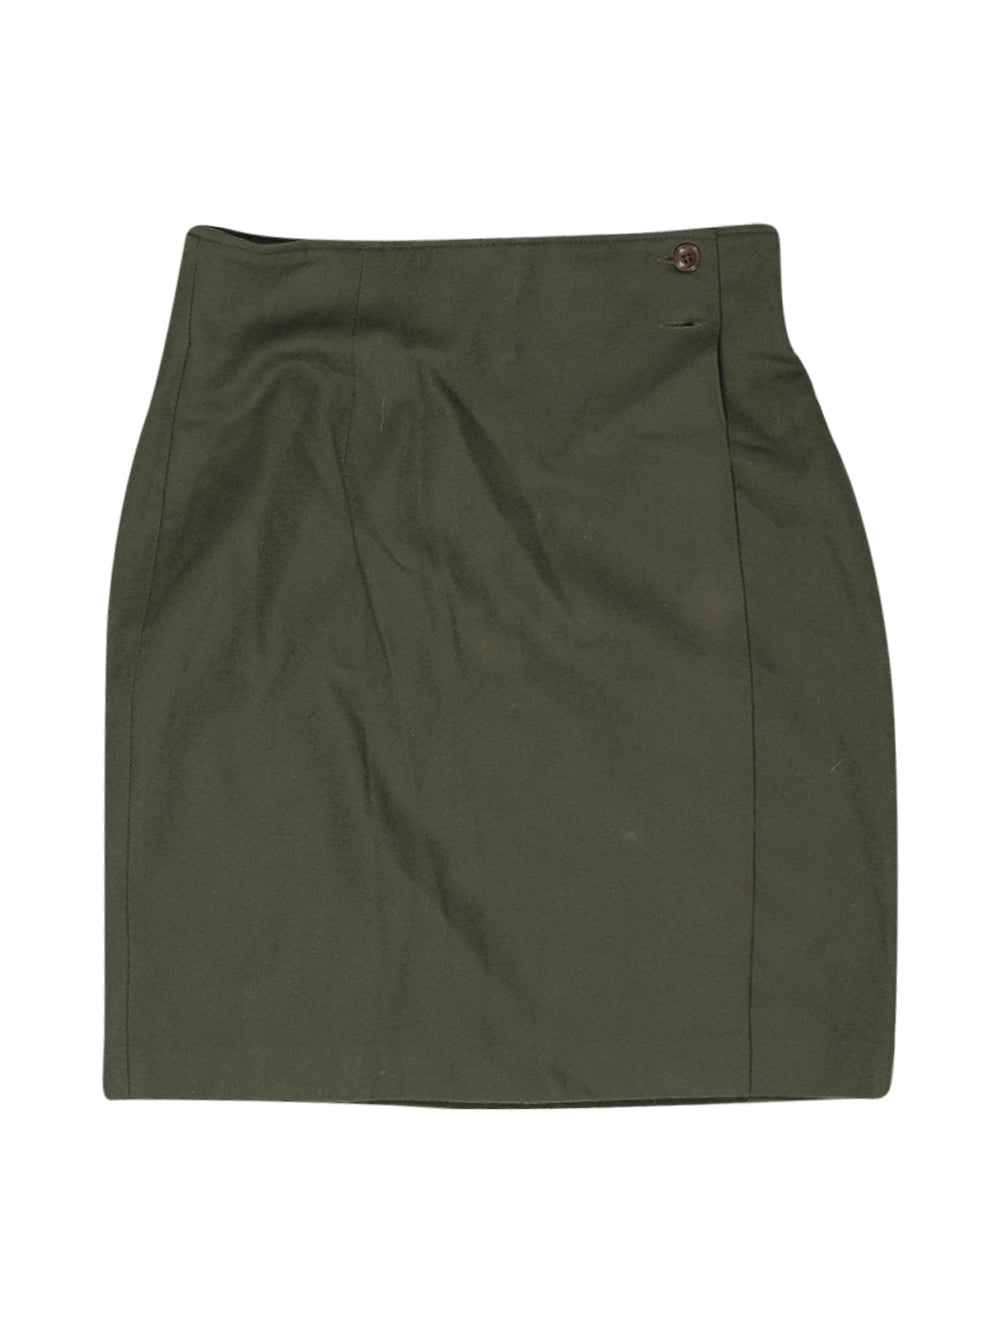 Front photo of Preloved Sisley Green Woman's skirt - size 10/M